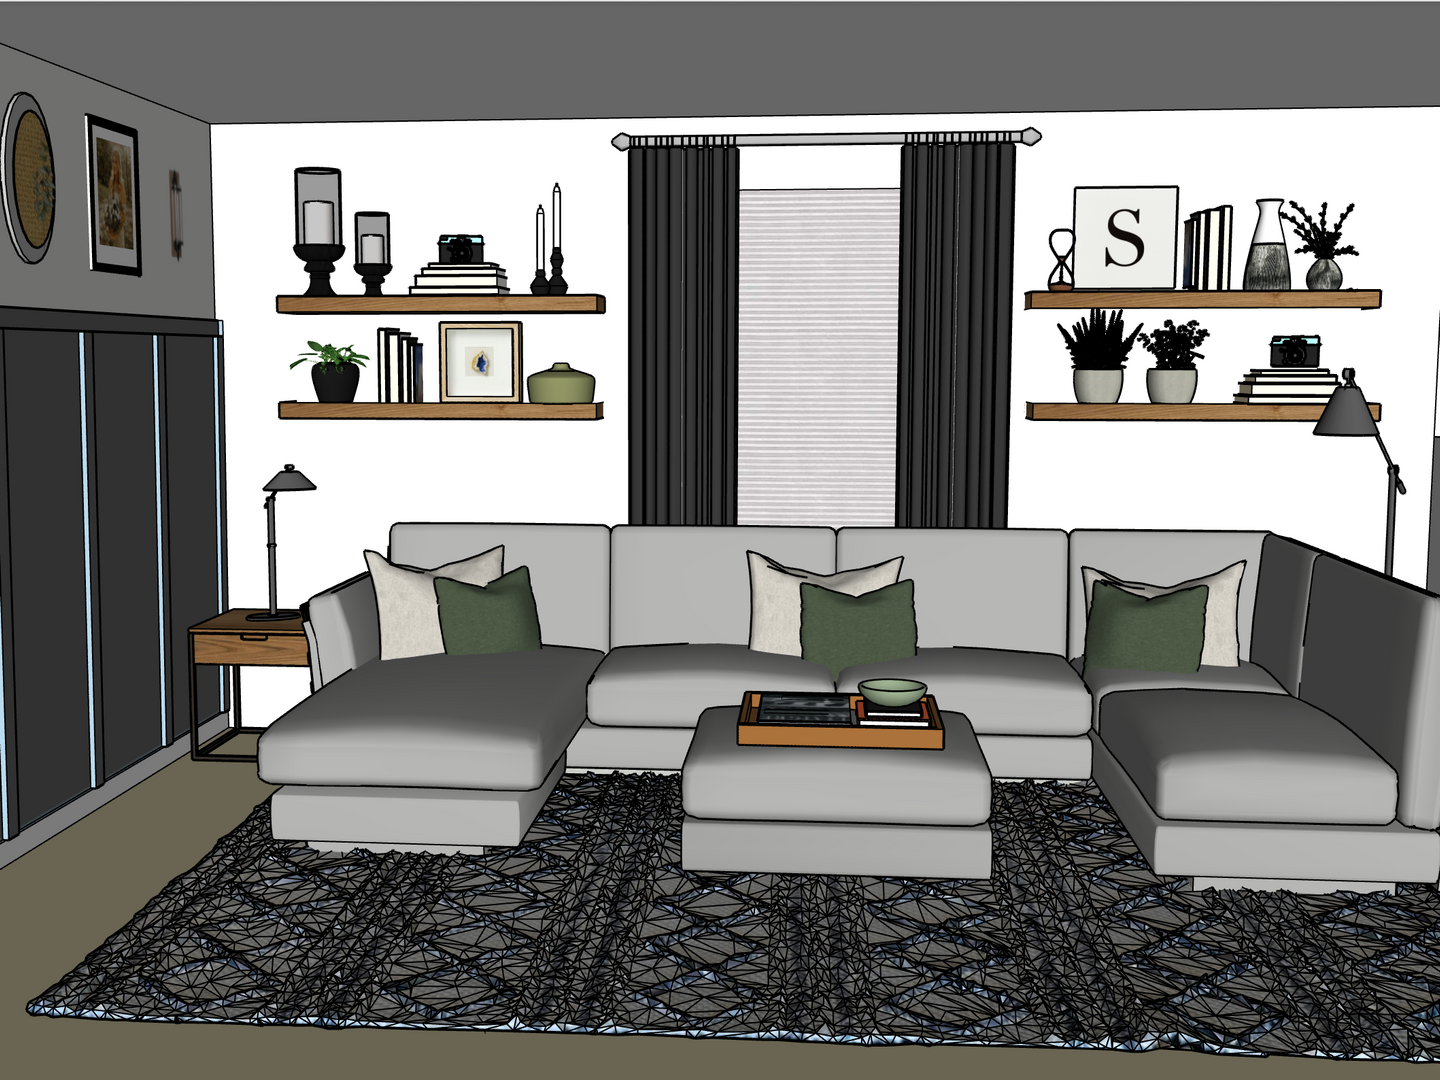 KS Media Room 3D Design.png